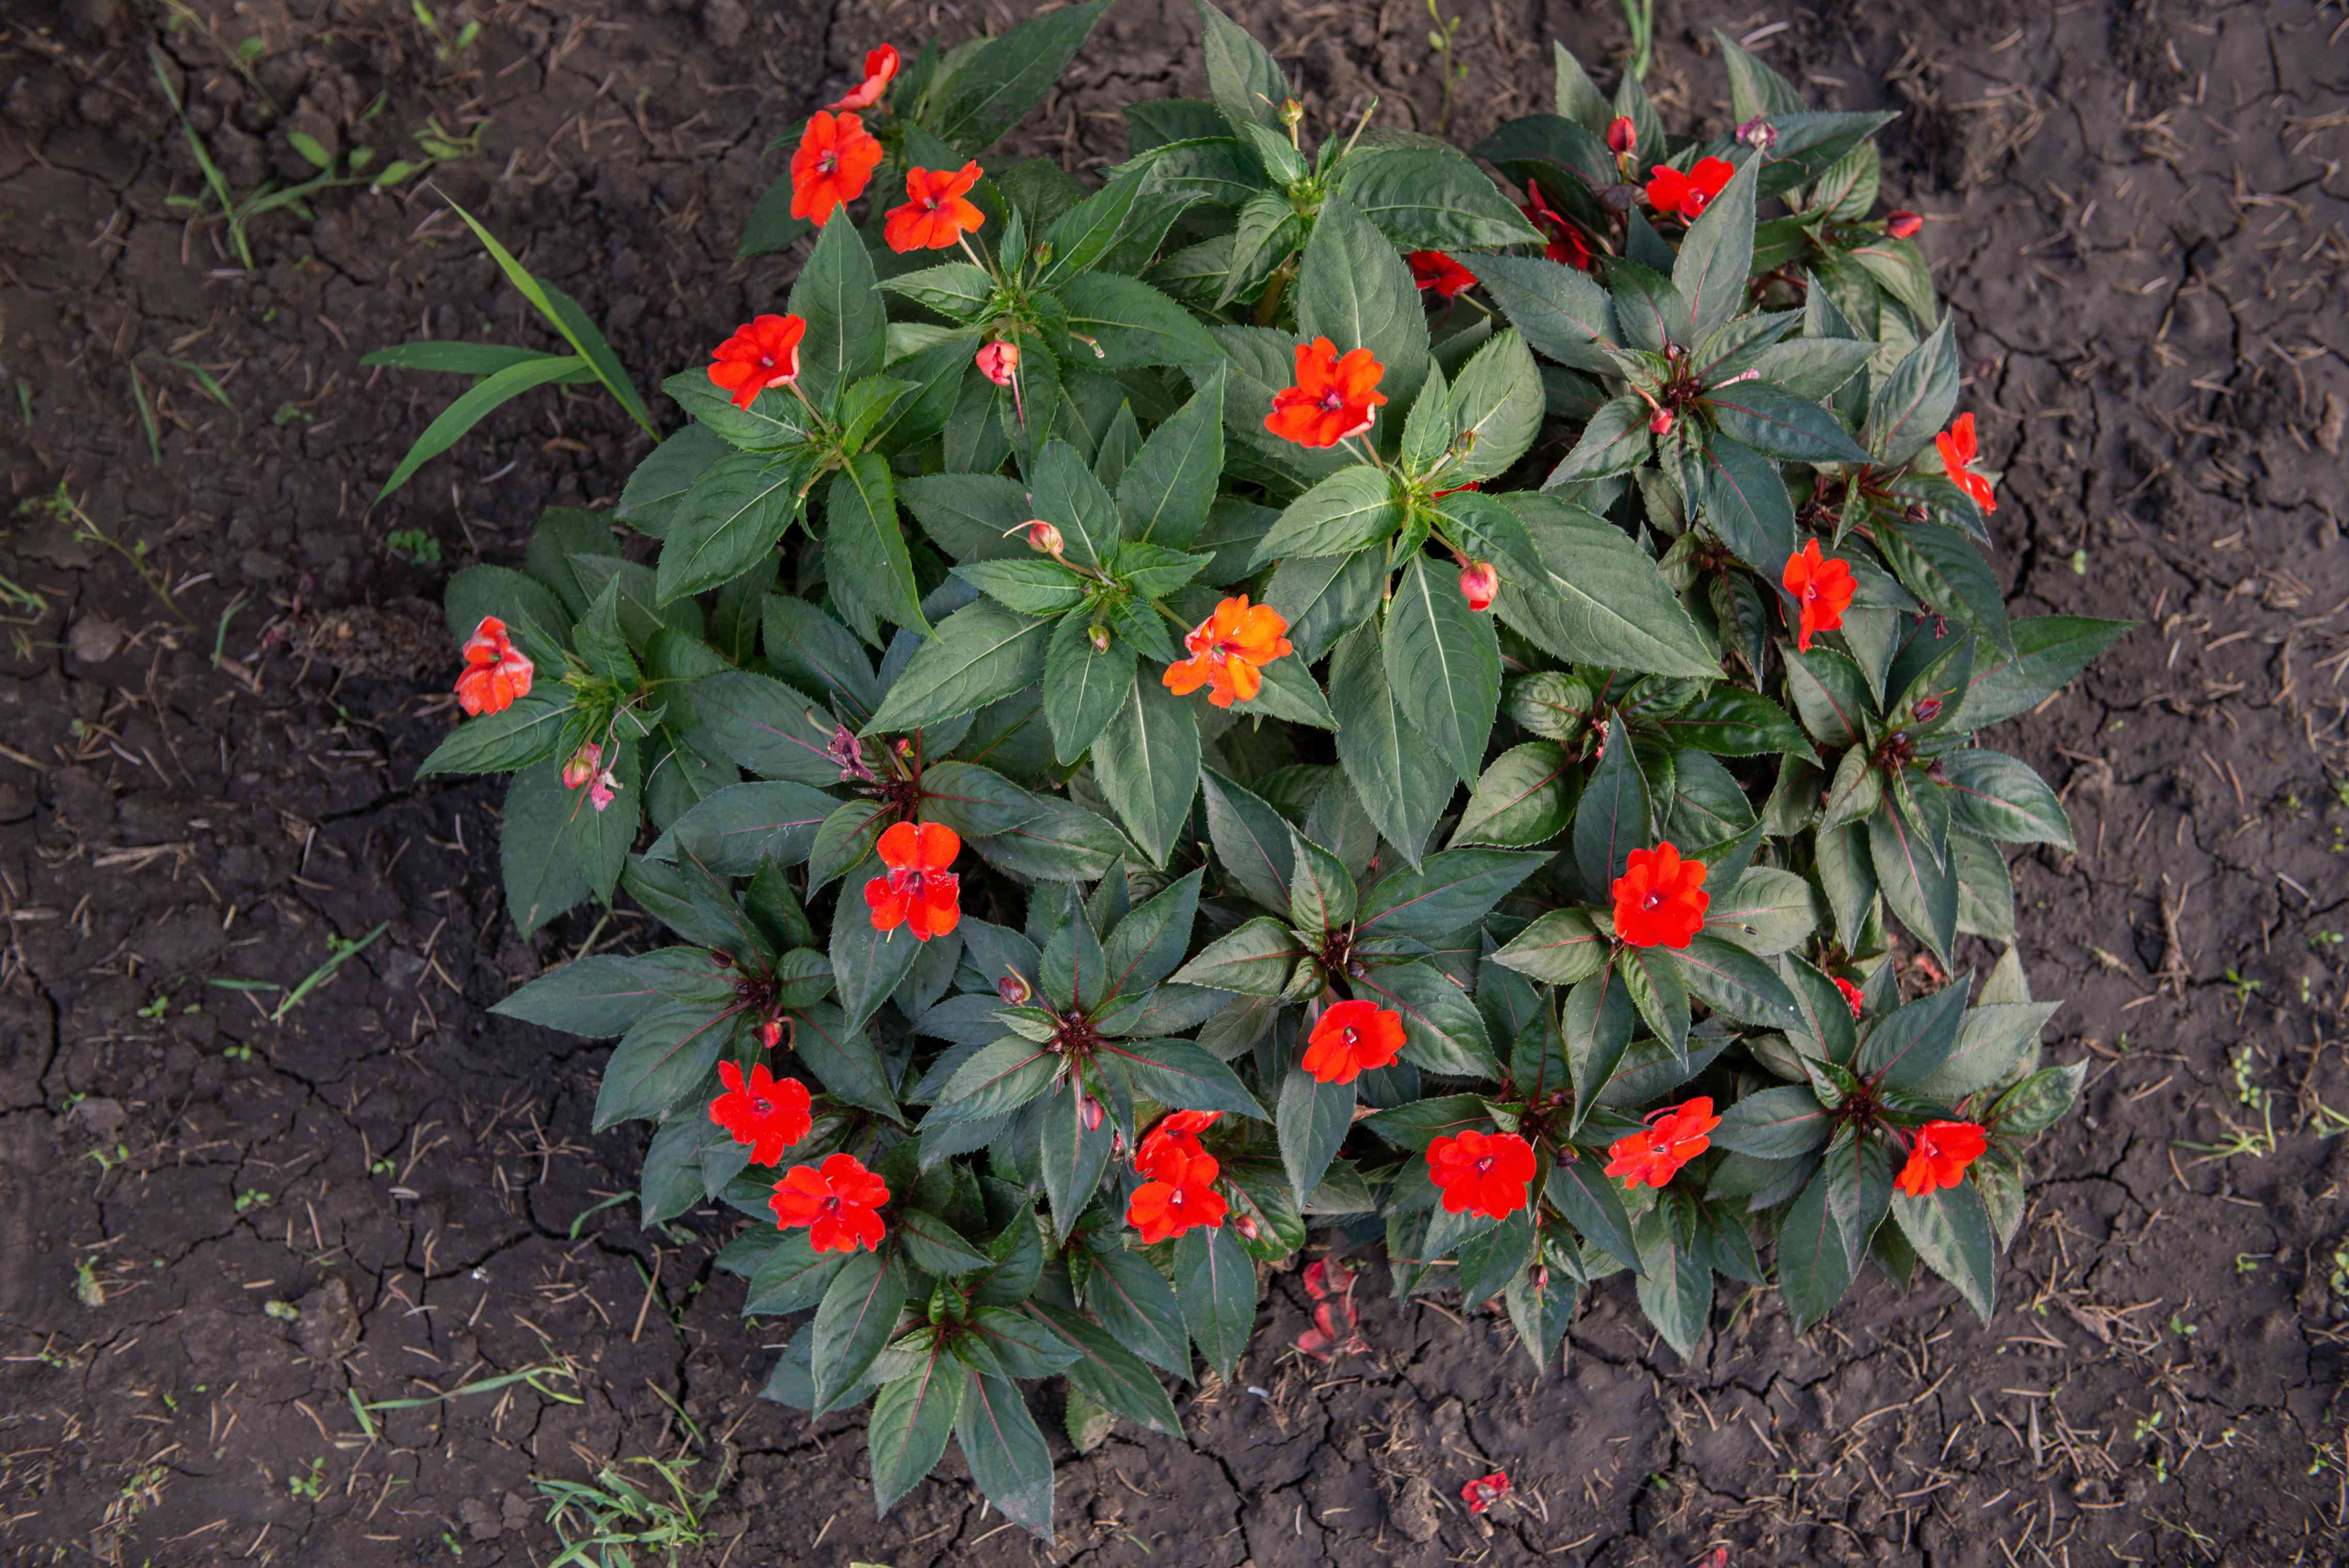 SunPatiens bush from above with bright red and orange flowers surrounded by clustered leaves